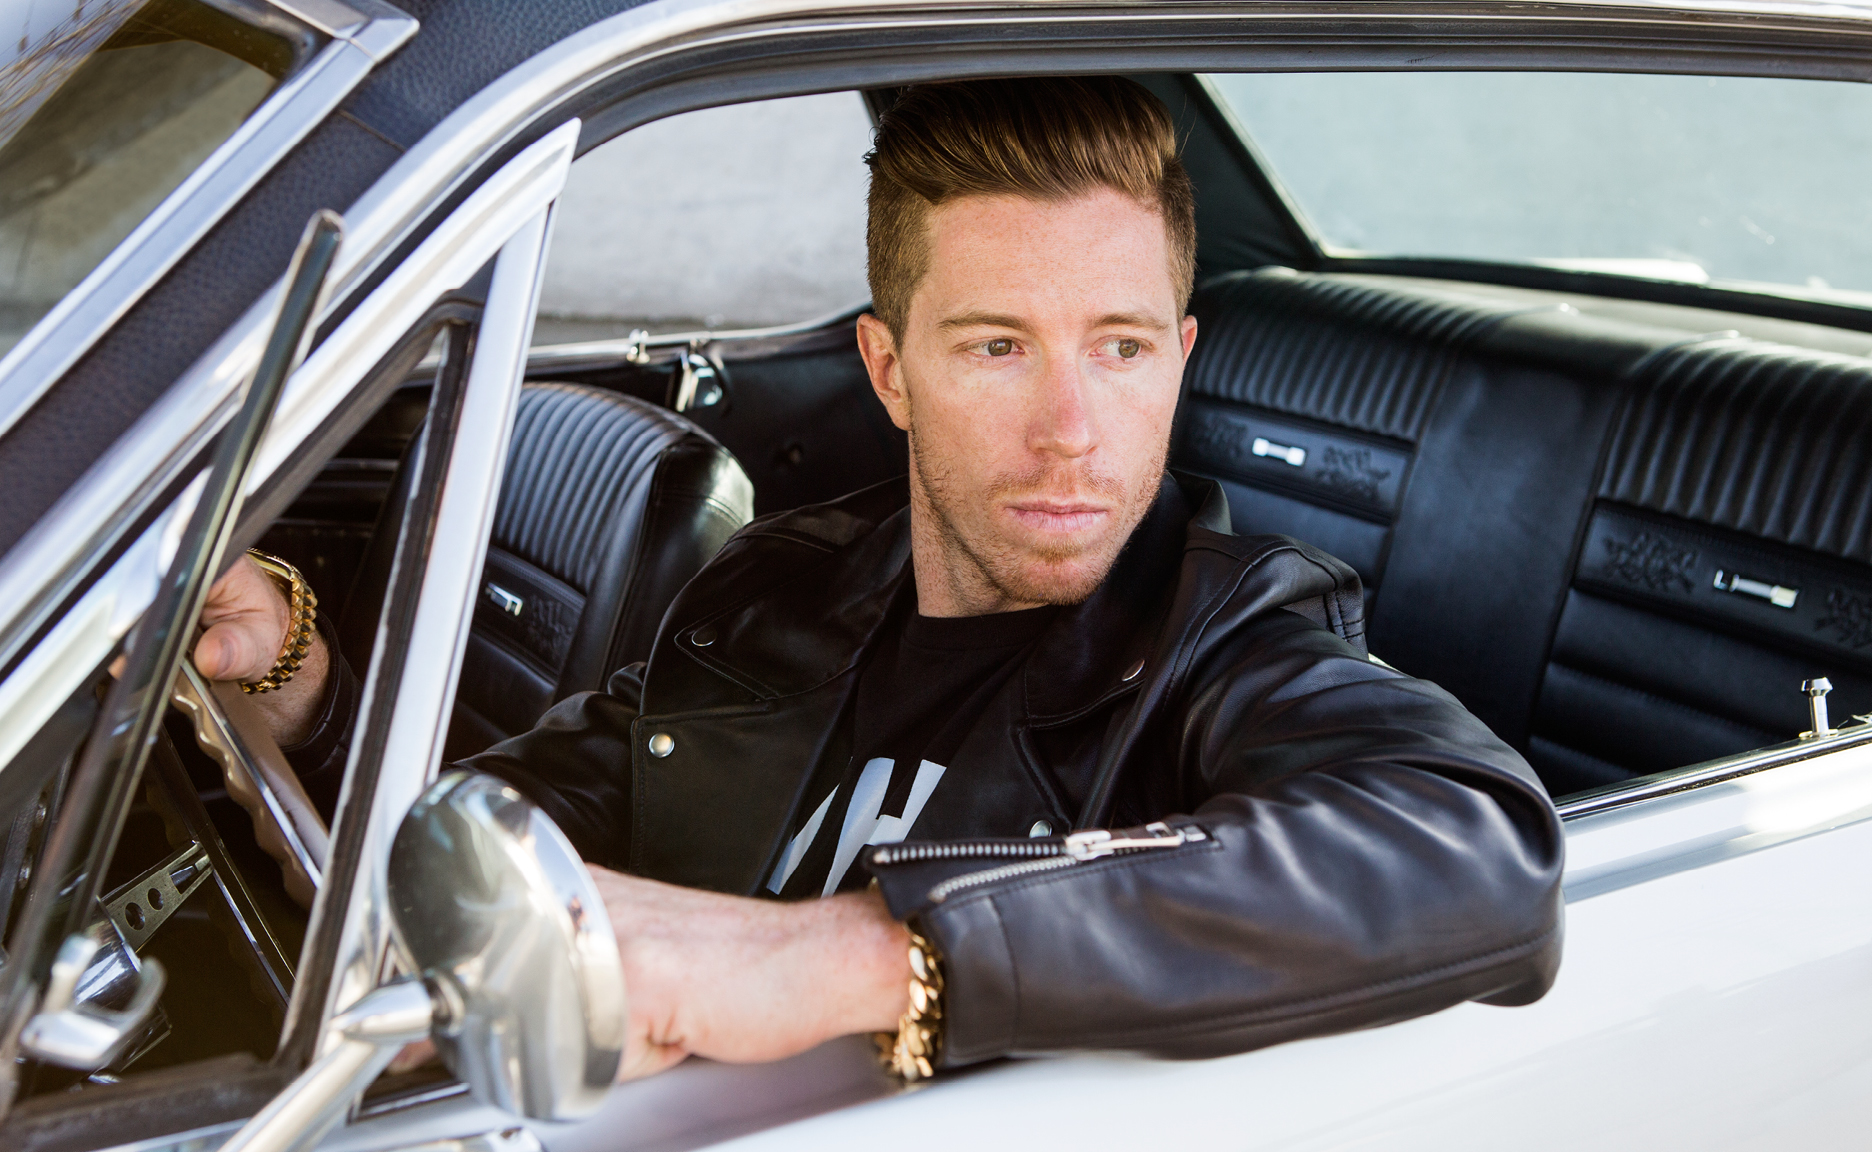 Shaun White in WHT SPACE mens clothing